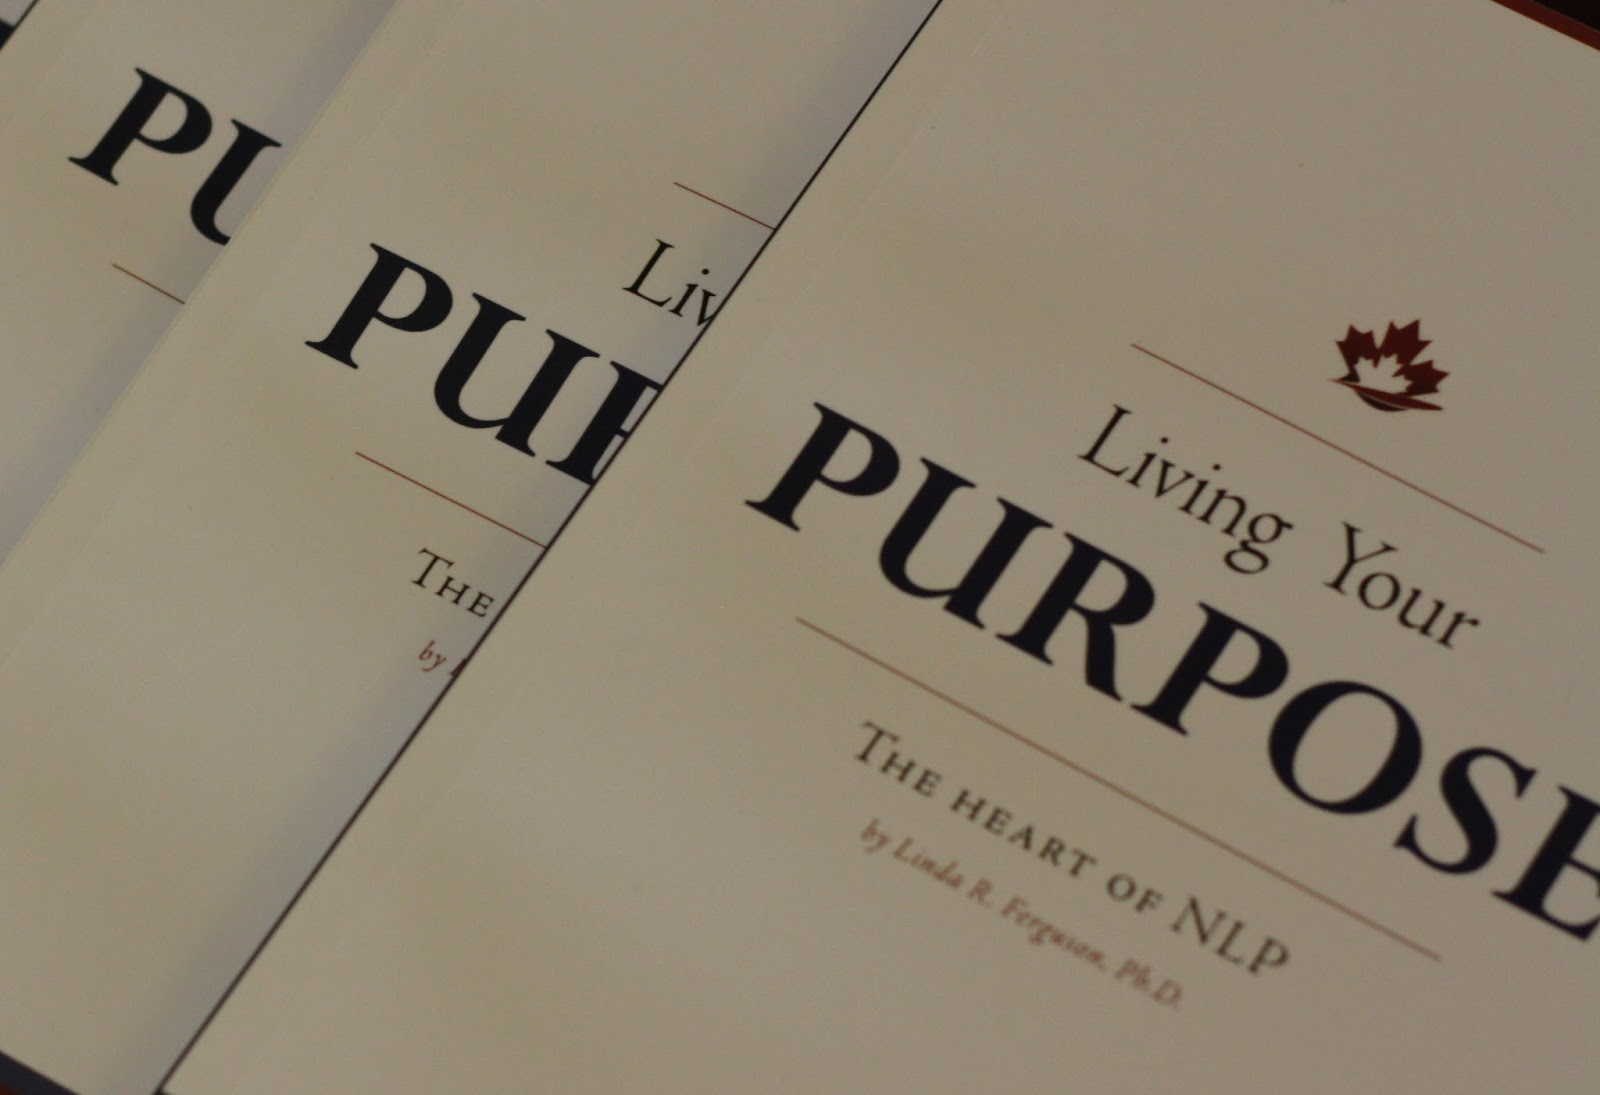 Lot of 7 The Purpose Driven Life books and 1 Journal by Rick Warren Hardcover HB